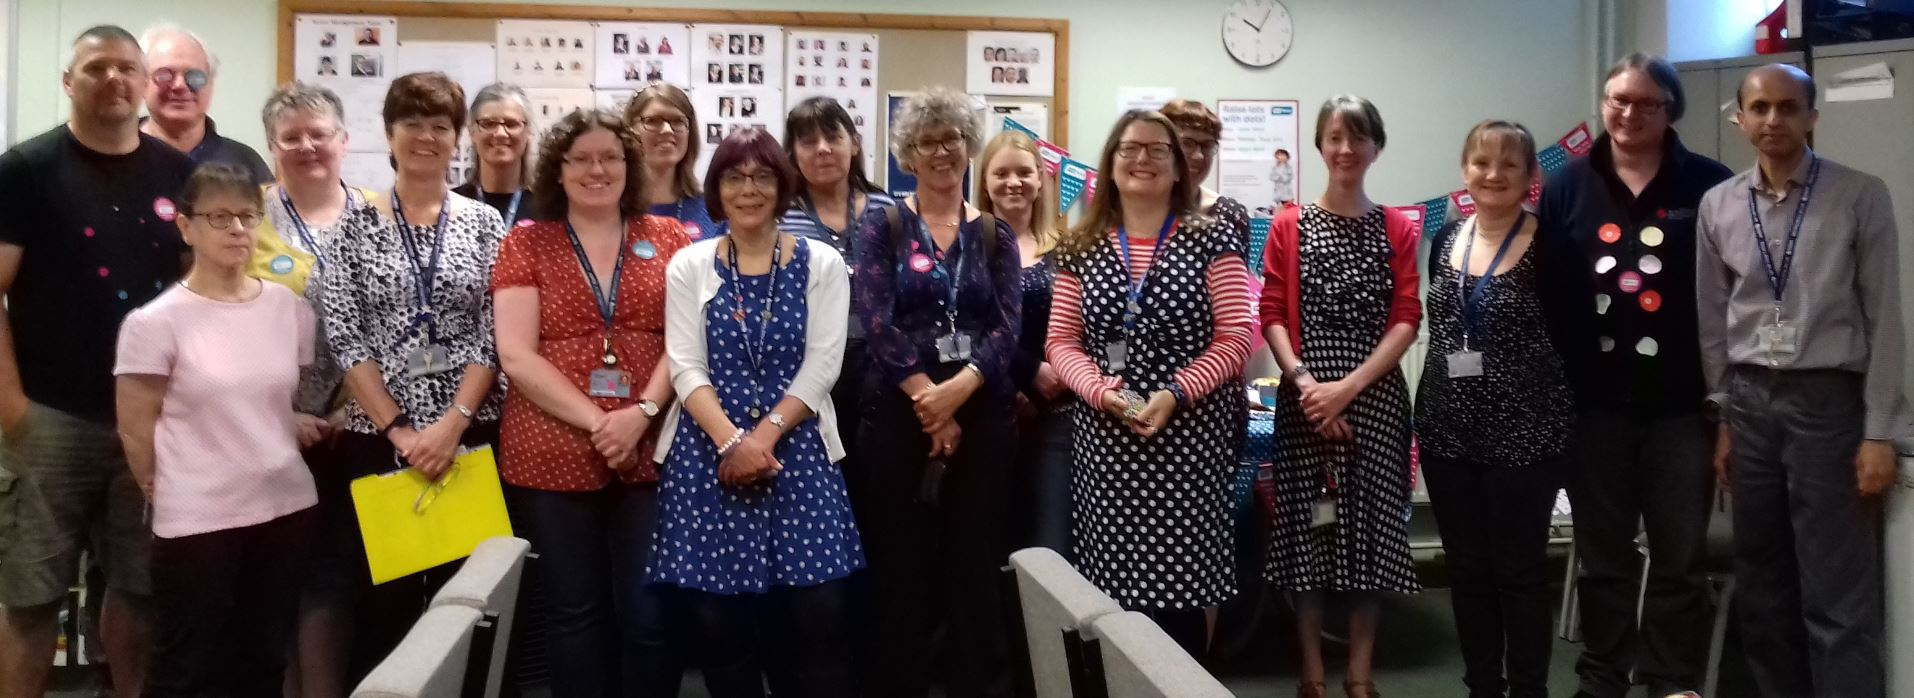 'Wear dots…raise lots' – LLS staff supporting RNIB and accessible formats